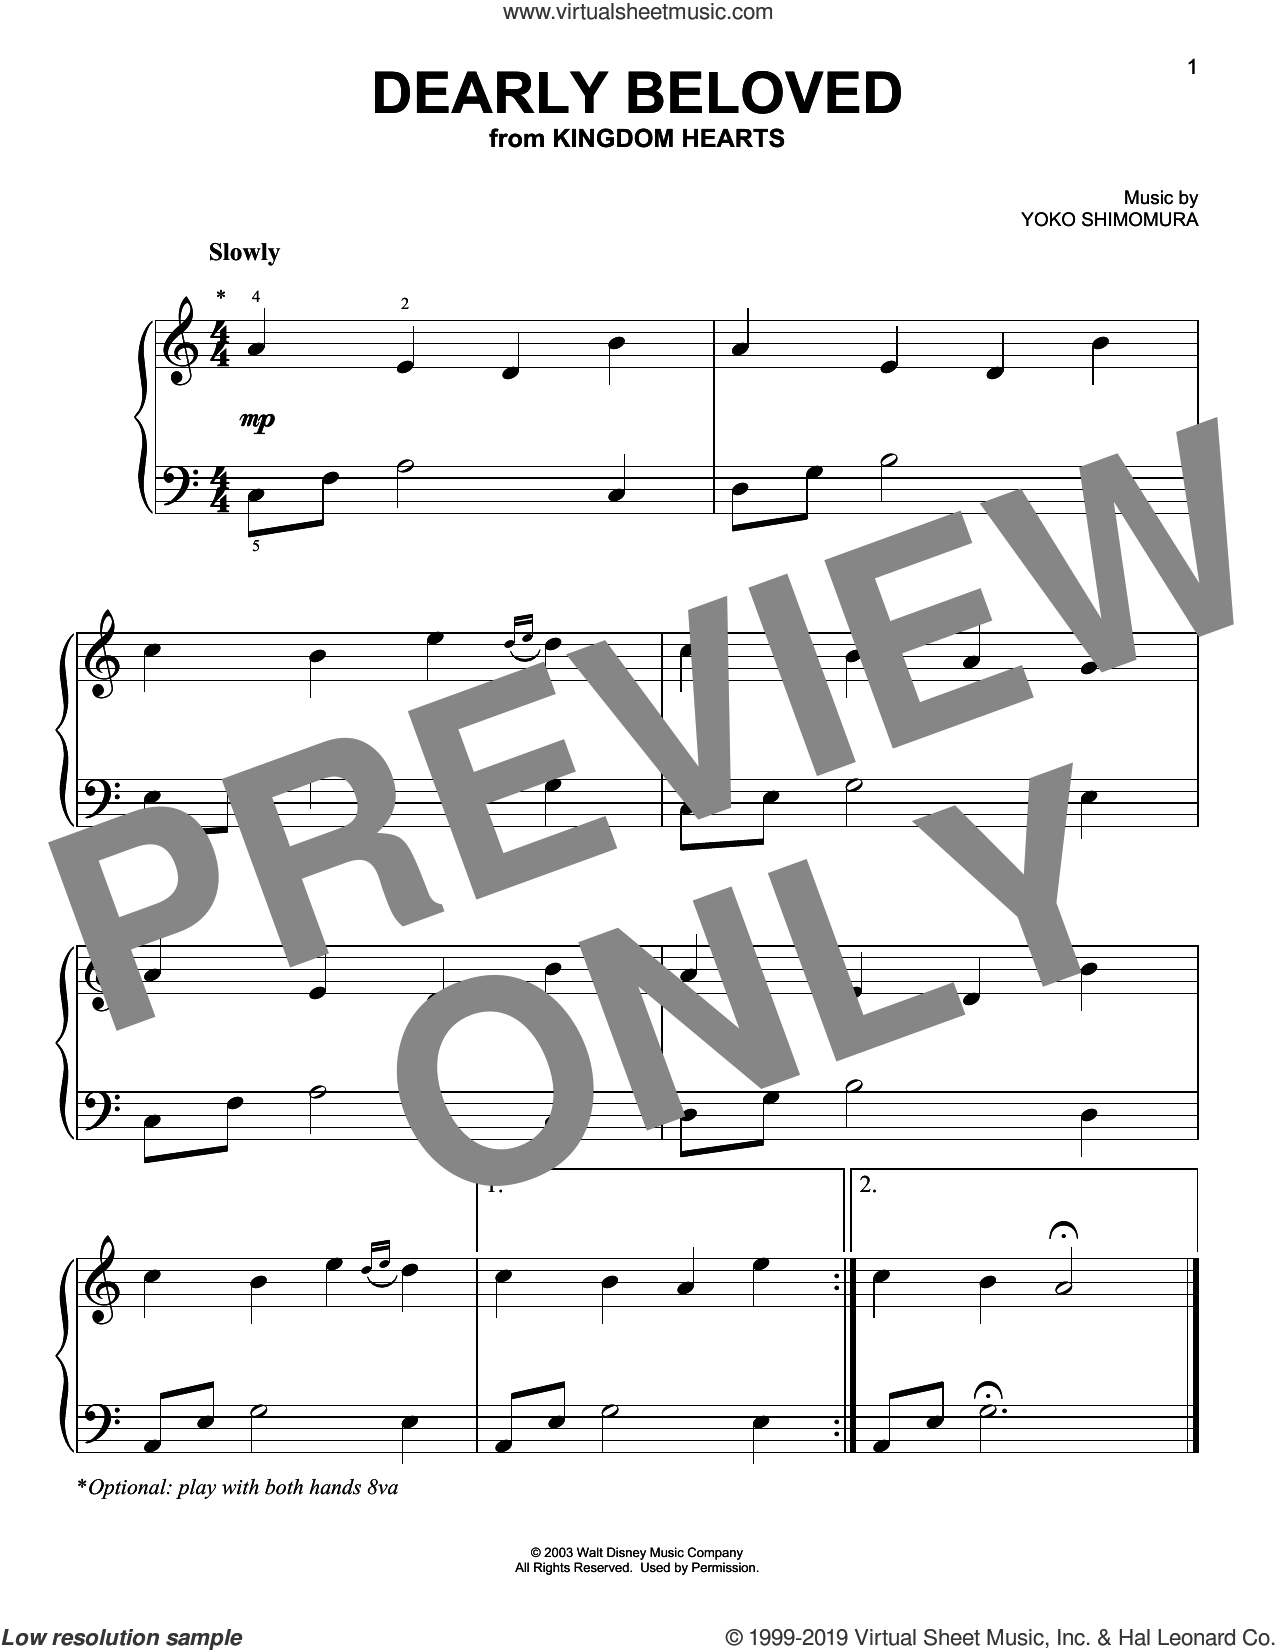 Dearly Beloved (from Kingdom Hearts) sheet music for piano solo by Yoko Shimomura, easy skill level